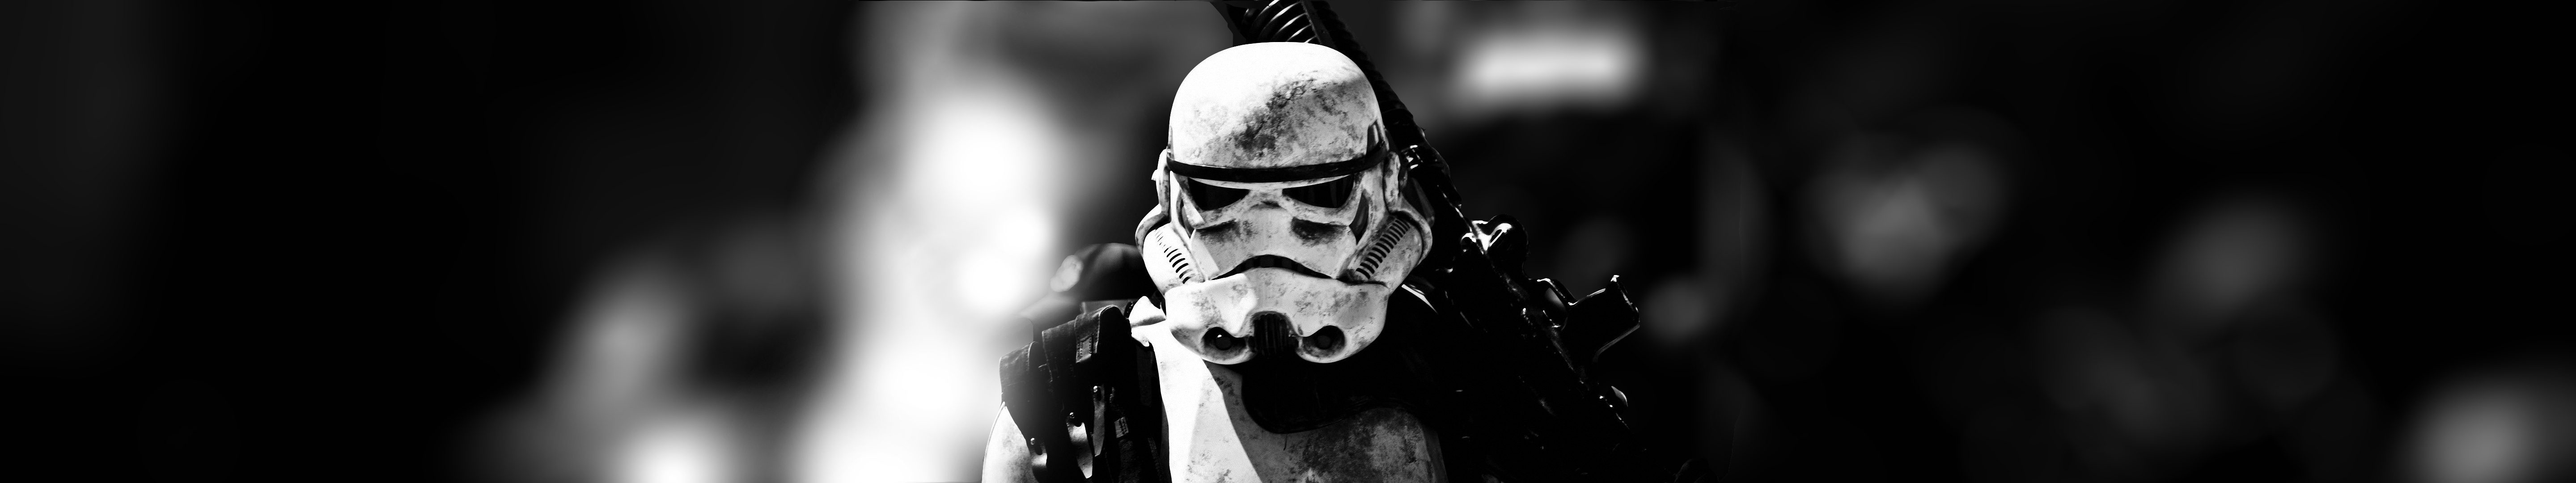 Created-my-own-Triple-Monitor-Stormtrooper-to-match-my-black-and-white-desk-setup-x-wallpaper-wpc5803784